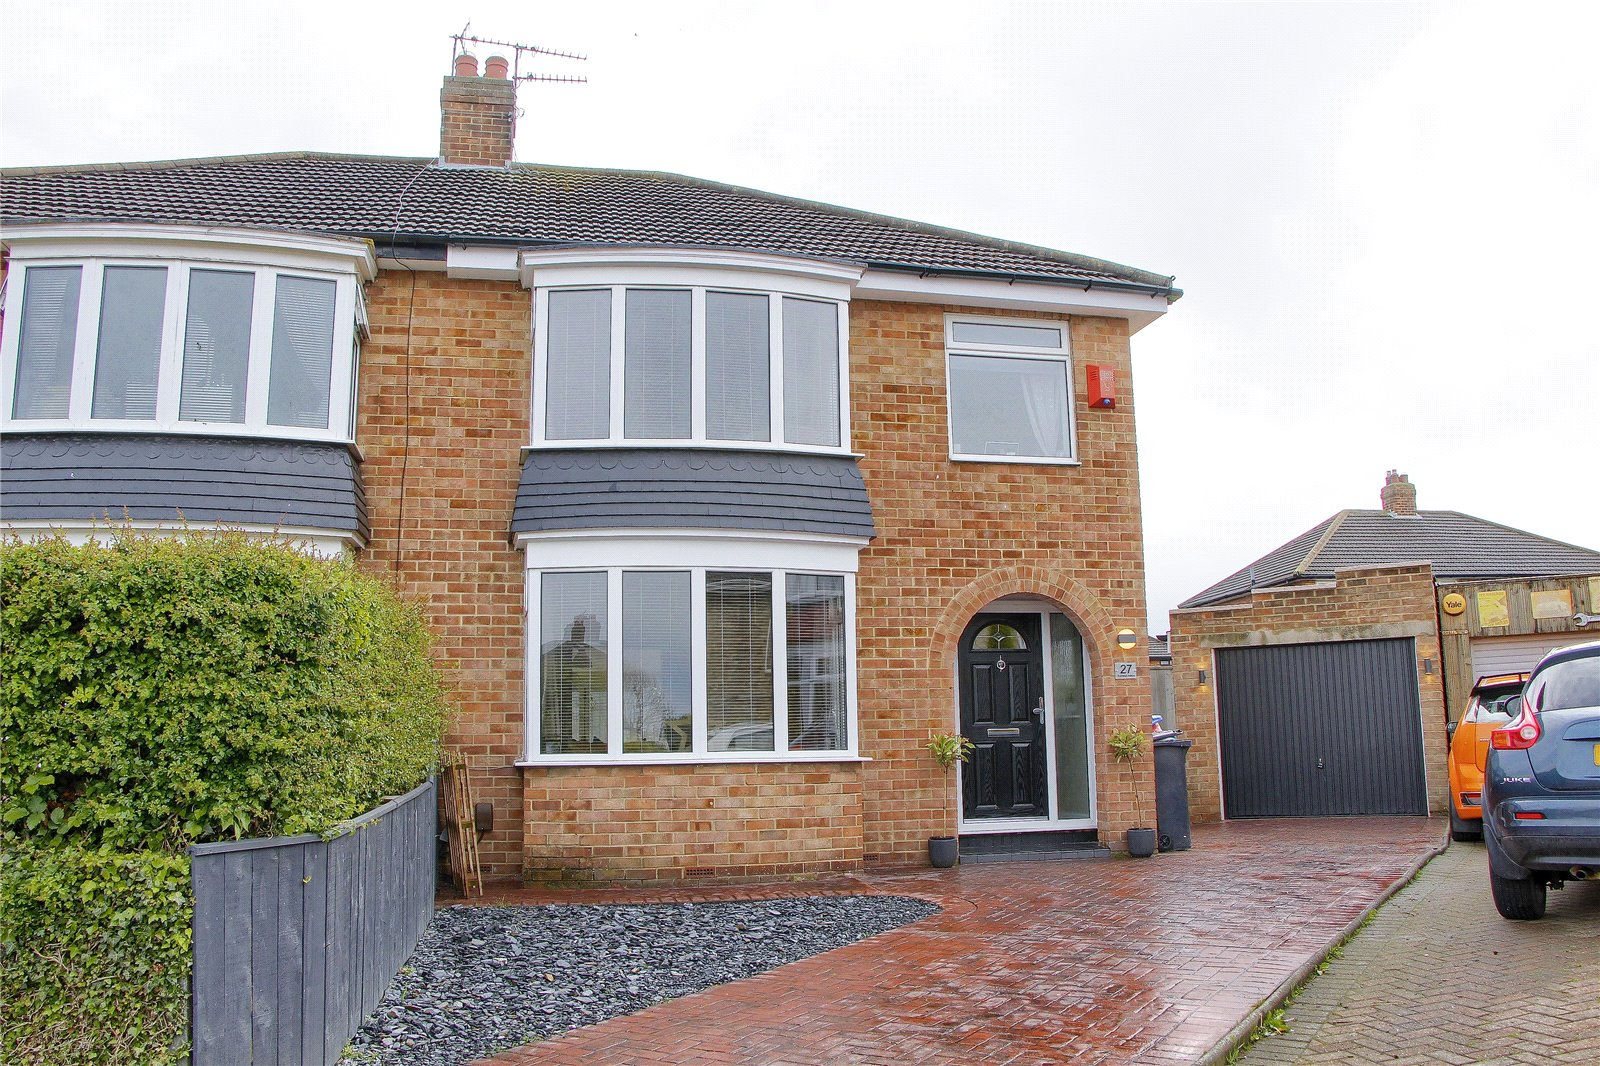 3 bed house for sale in Rushleigh Avenue, Acklam - Property Image 1